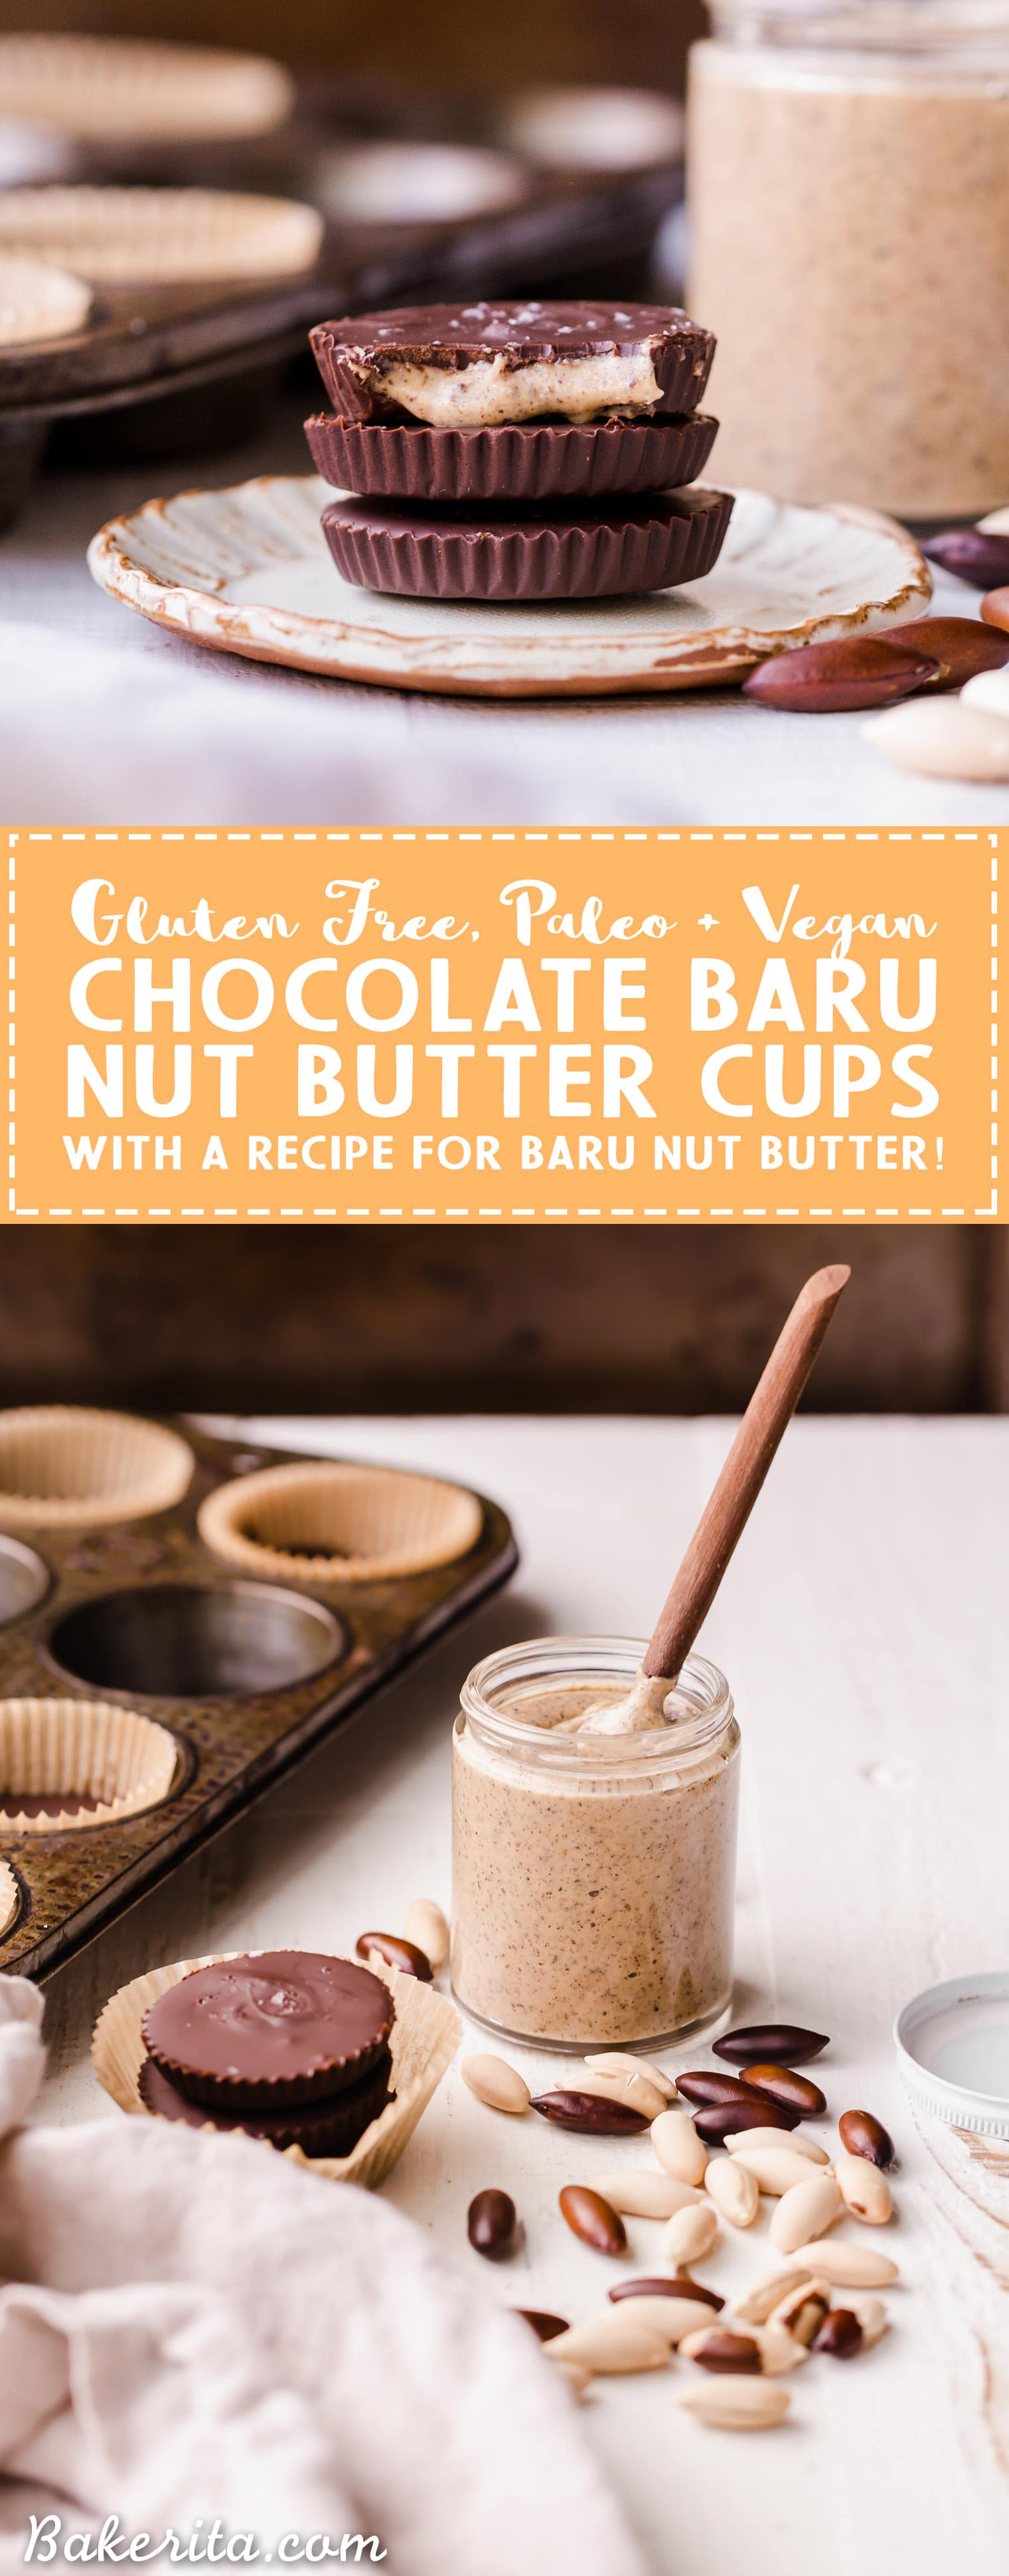 Have you ever heard of a Baru Nut? These superfood nuts are super high in protein and antioxidants, making them a great addition to your diet! This simple recipe shows you how to make a delicious Baru Nut Butter and Chocolate Baru Nut Butter Cups. They're gluten-free and vegan, with a paleo-option.